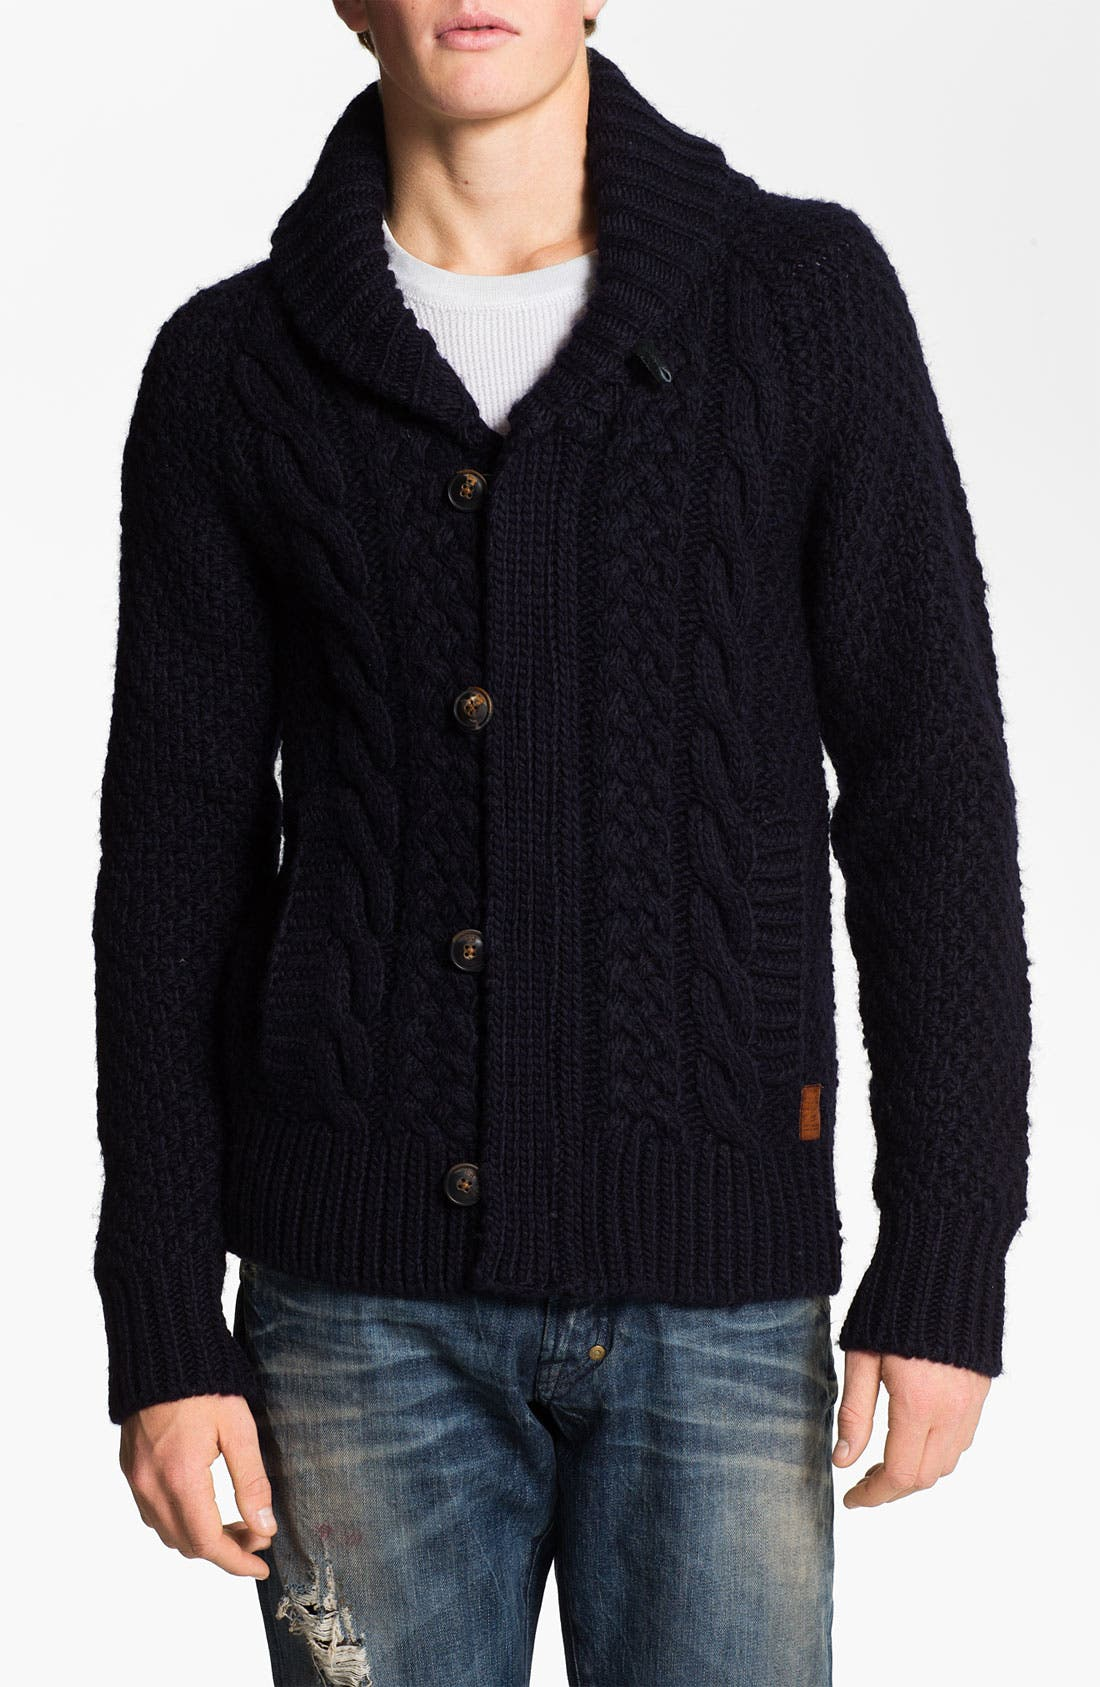 Alternate Image 1 Selected - Scotch & Soda Shawl Collar Sweater